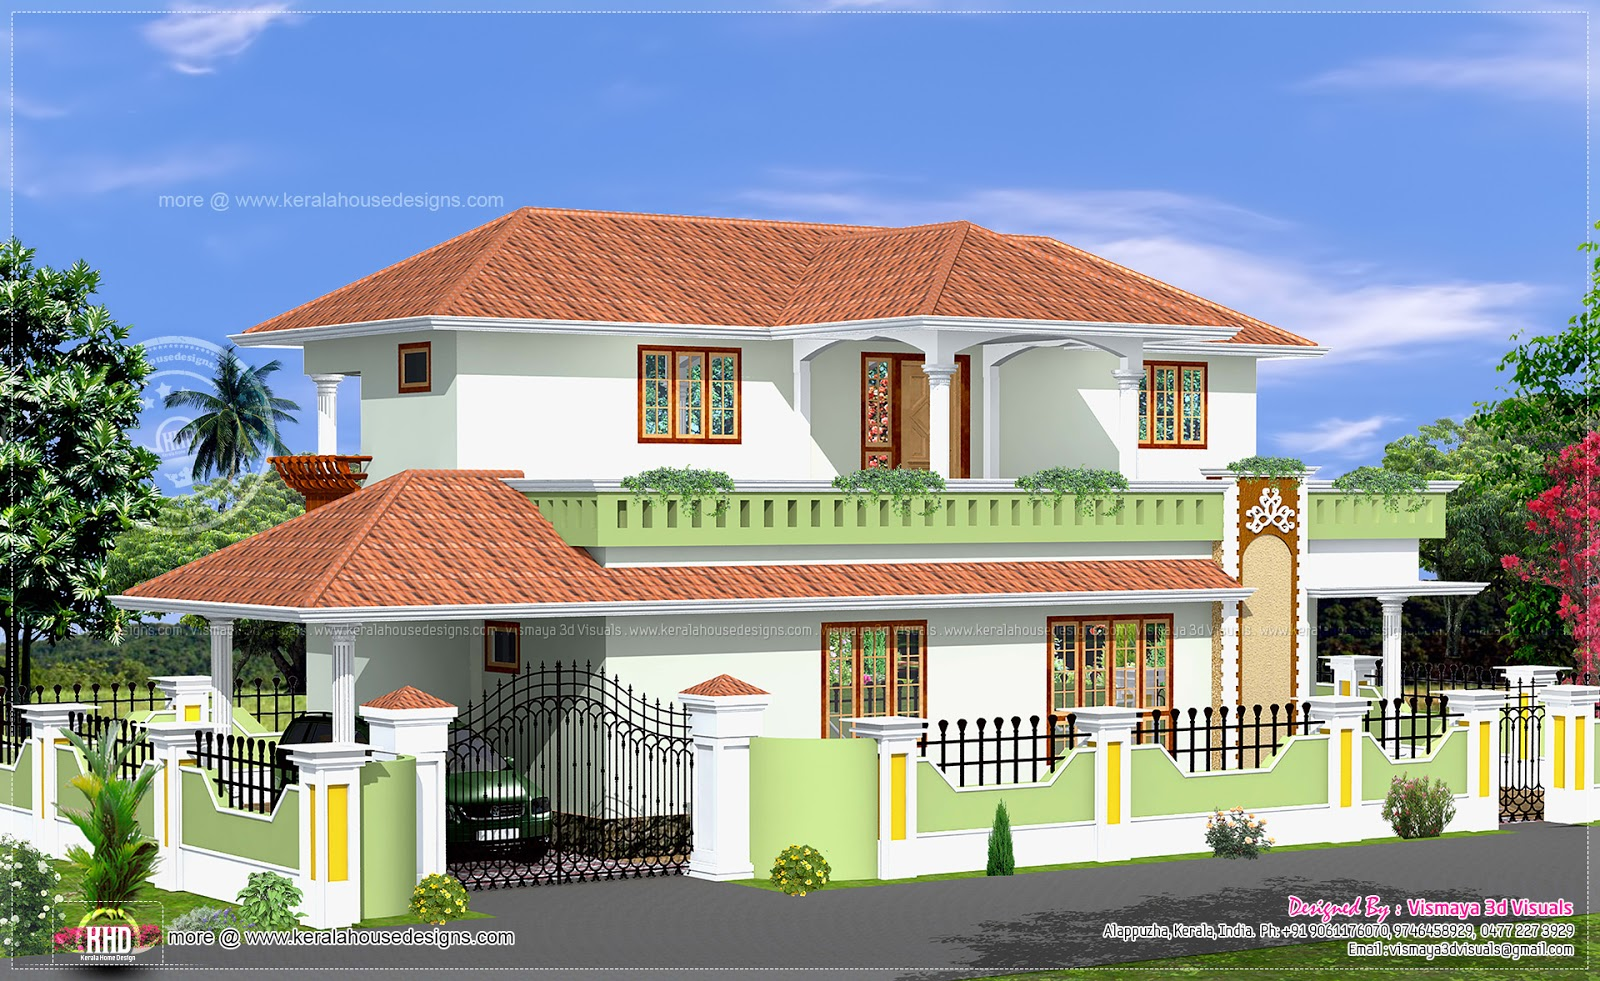 Simple house designs kerala style home design and style for Minimalist house kerala